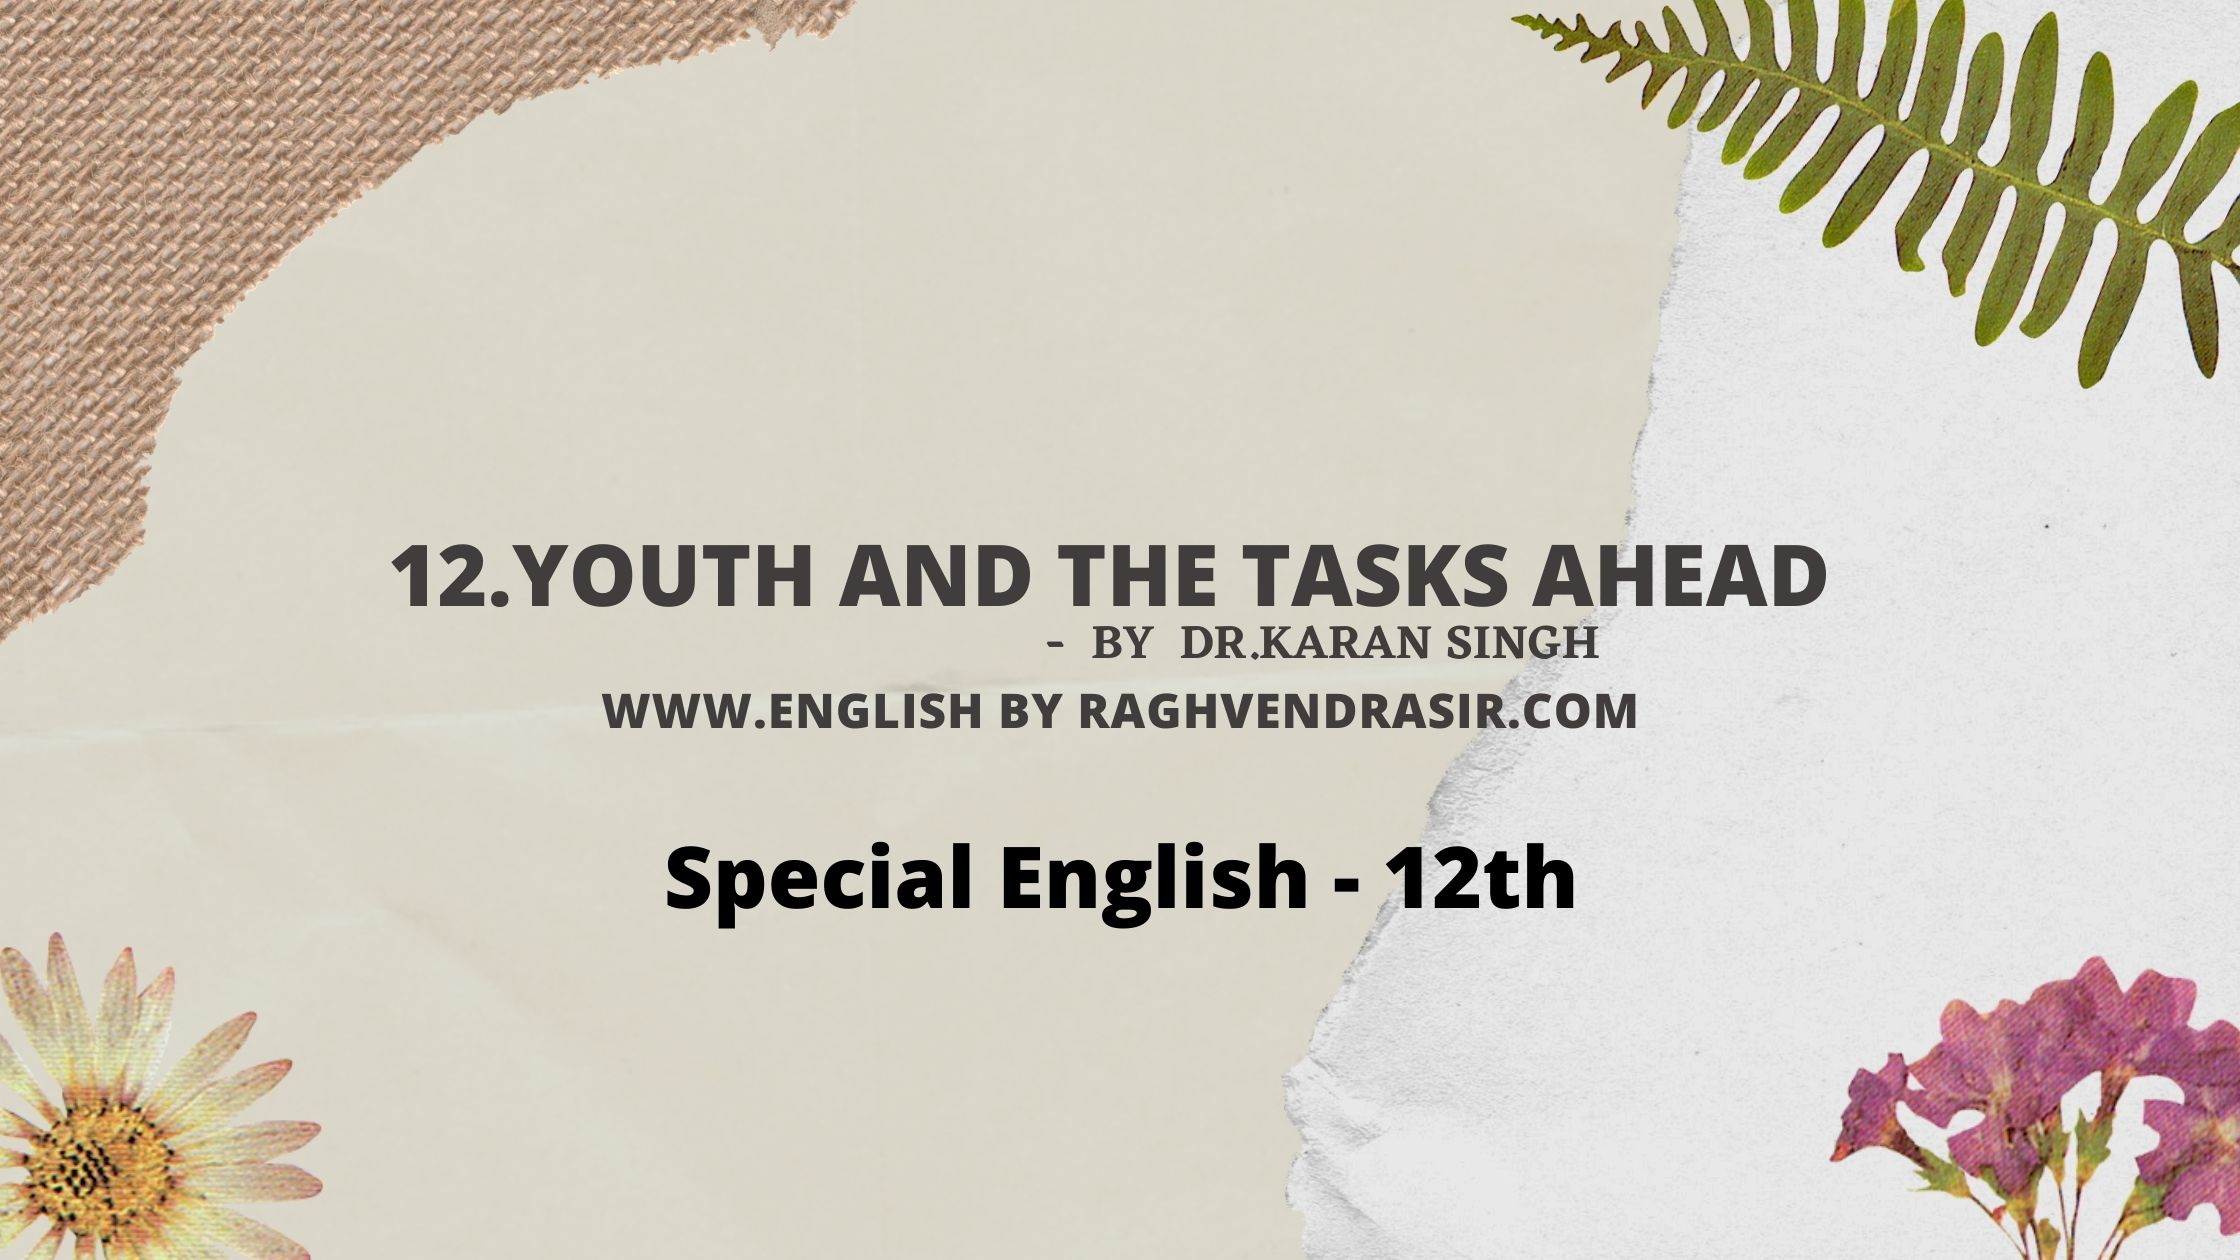 Youth and the Tasks Ahead by  Dr.Karan Singh